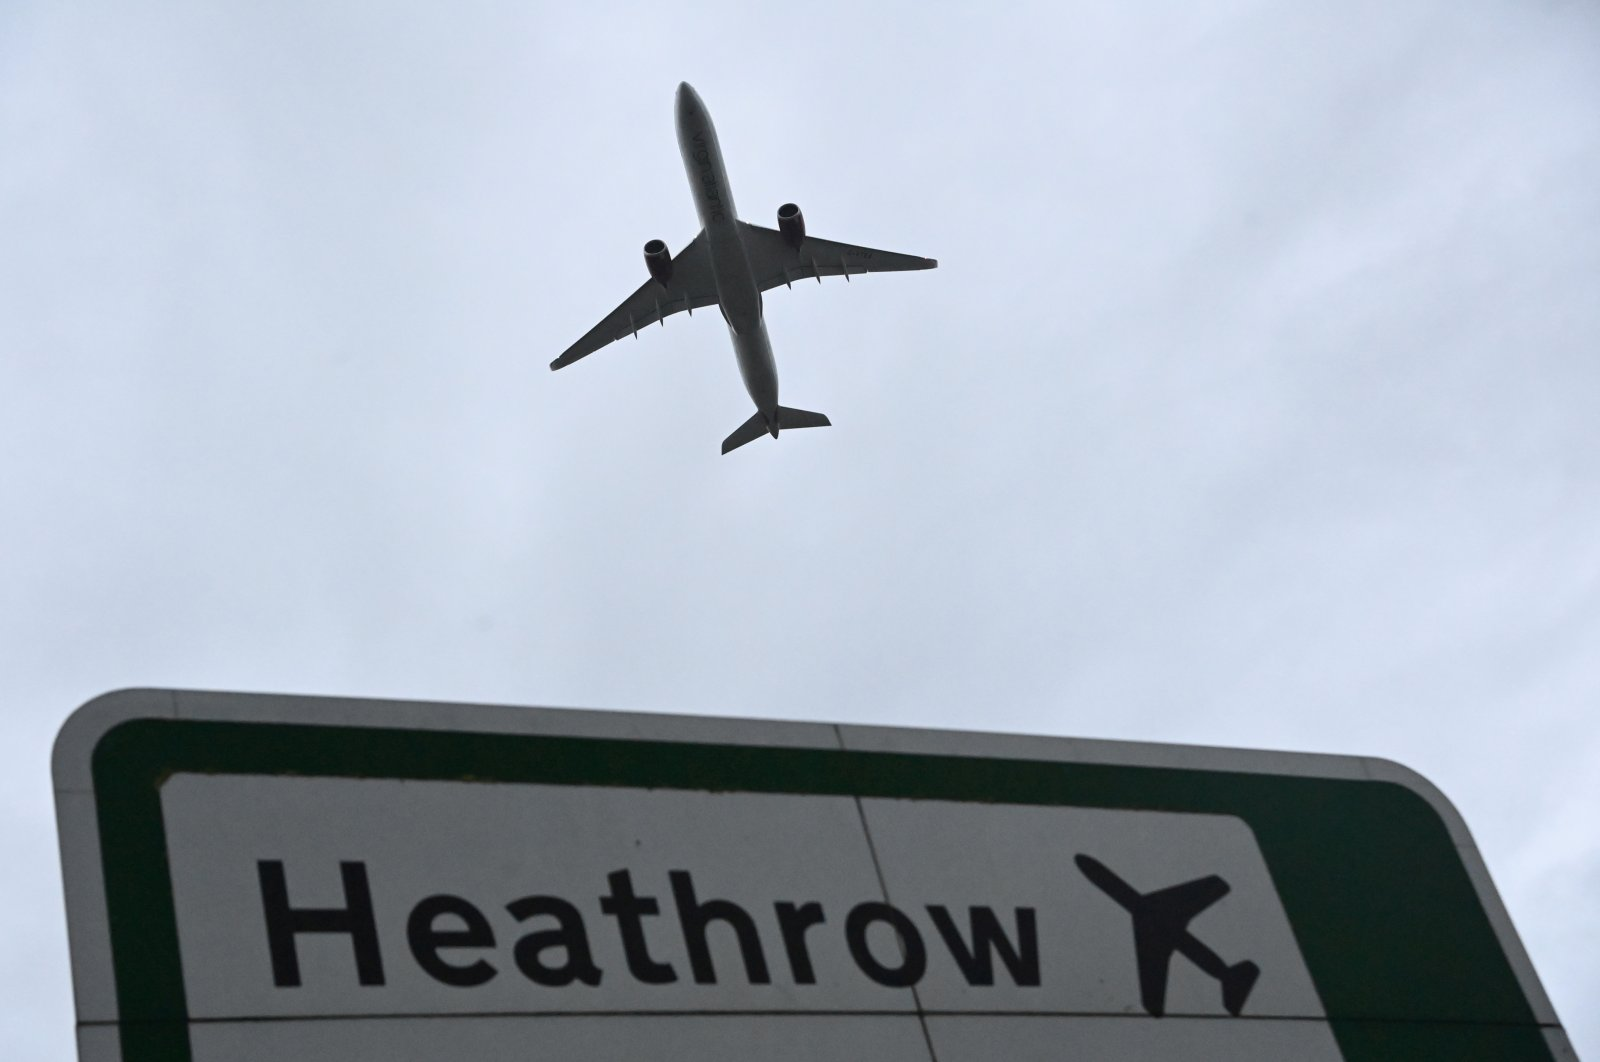 An aircraft takes off from Heathrow Airport amid the spread of the coronavirus disease (COVID-19) pandemic in London, Britain, Feb. 4, 2021. (Reuters Photo)